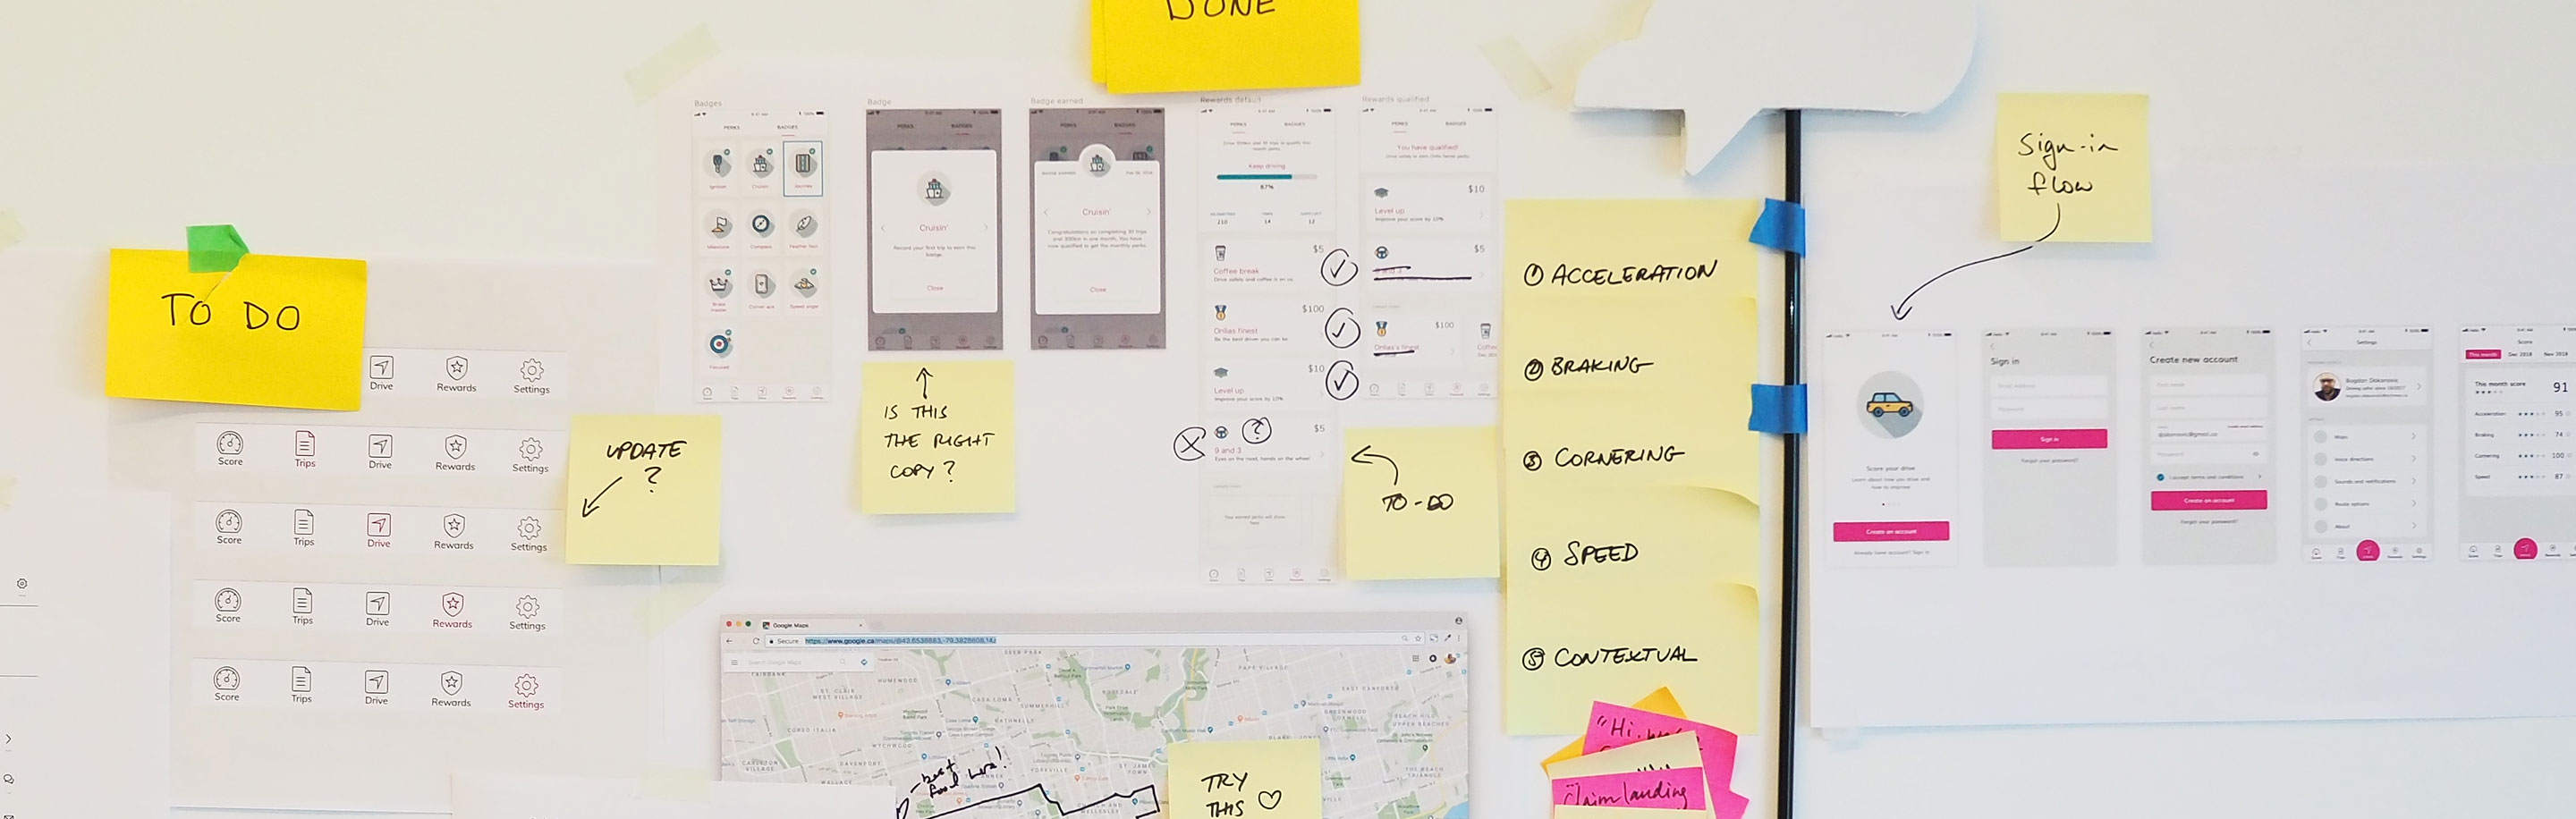 Image of brainstorming and app development scratch notes